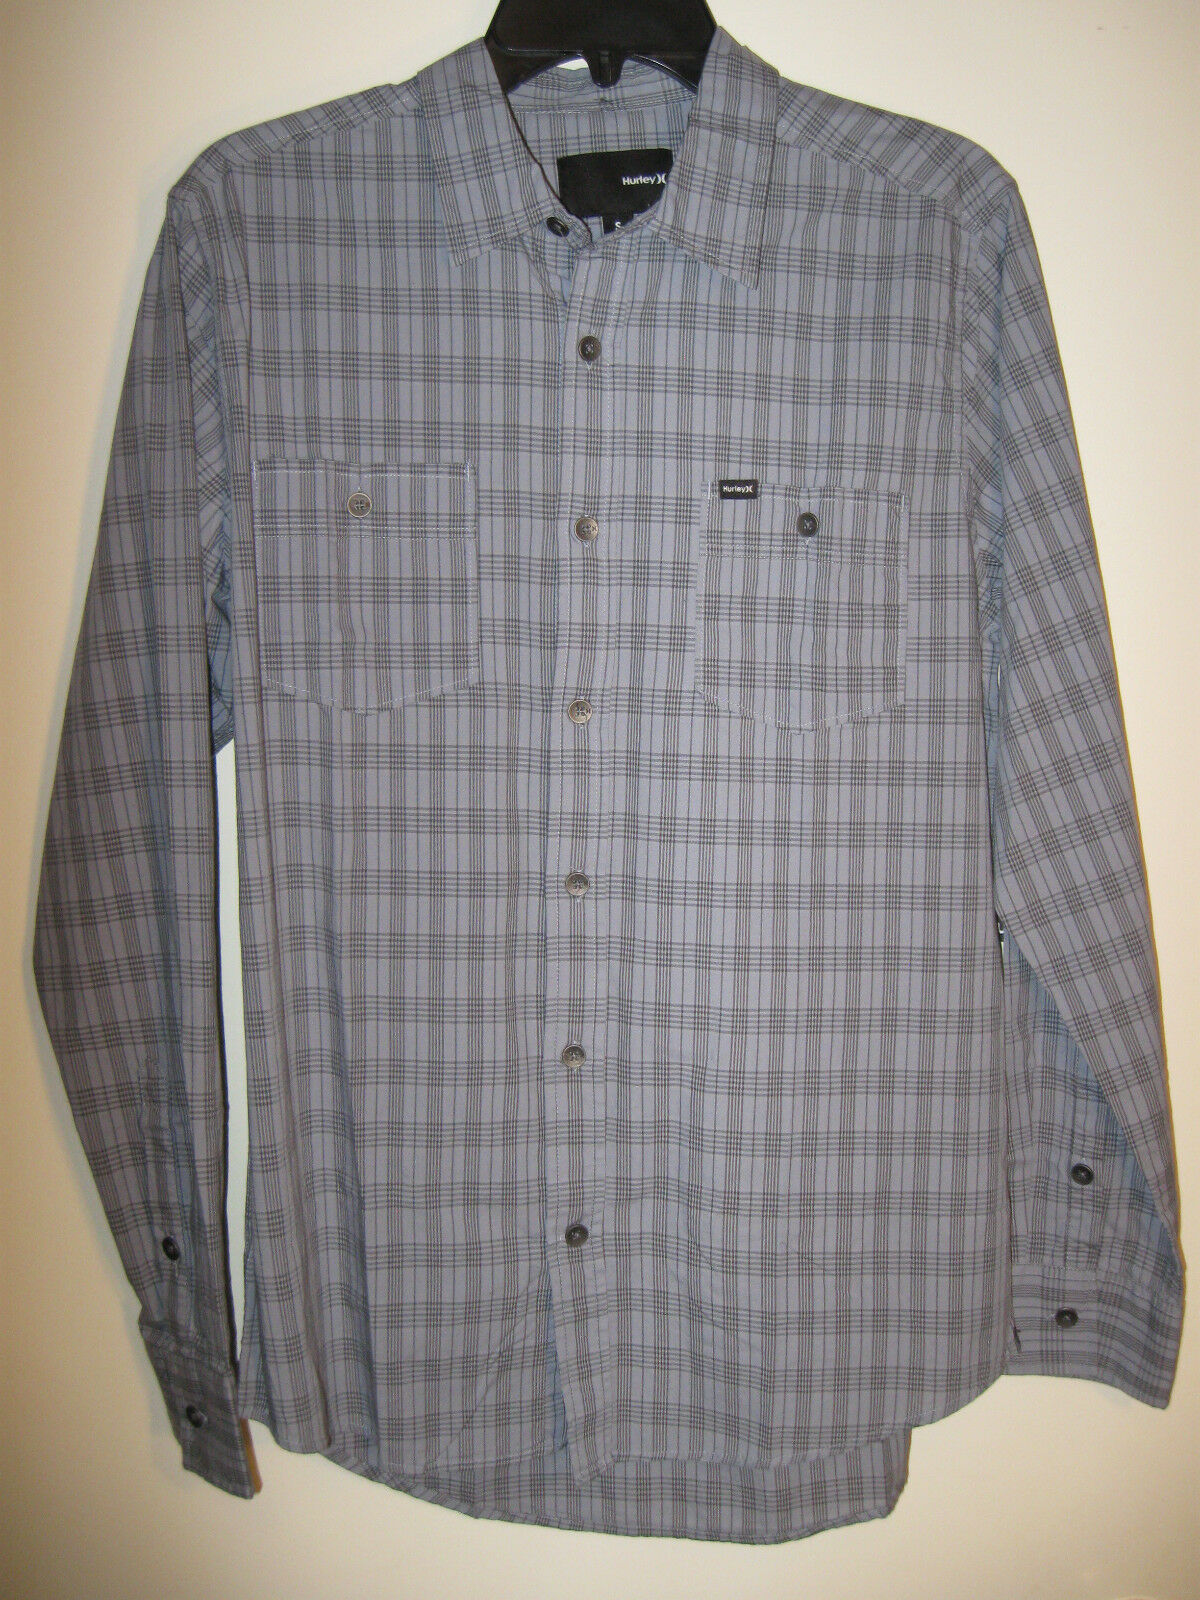 Hurley Button Shirt Dapper Grey Plaid Mens Size Small 100 Cotton